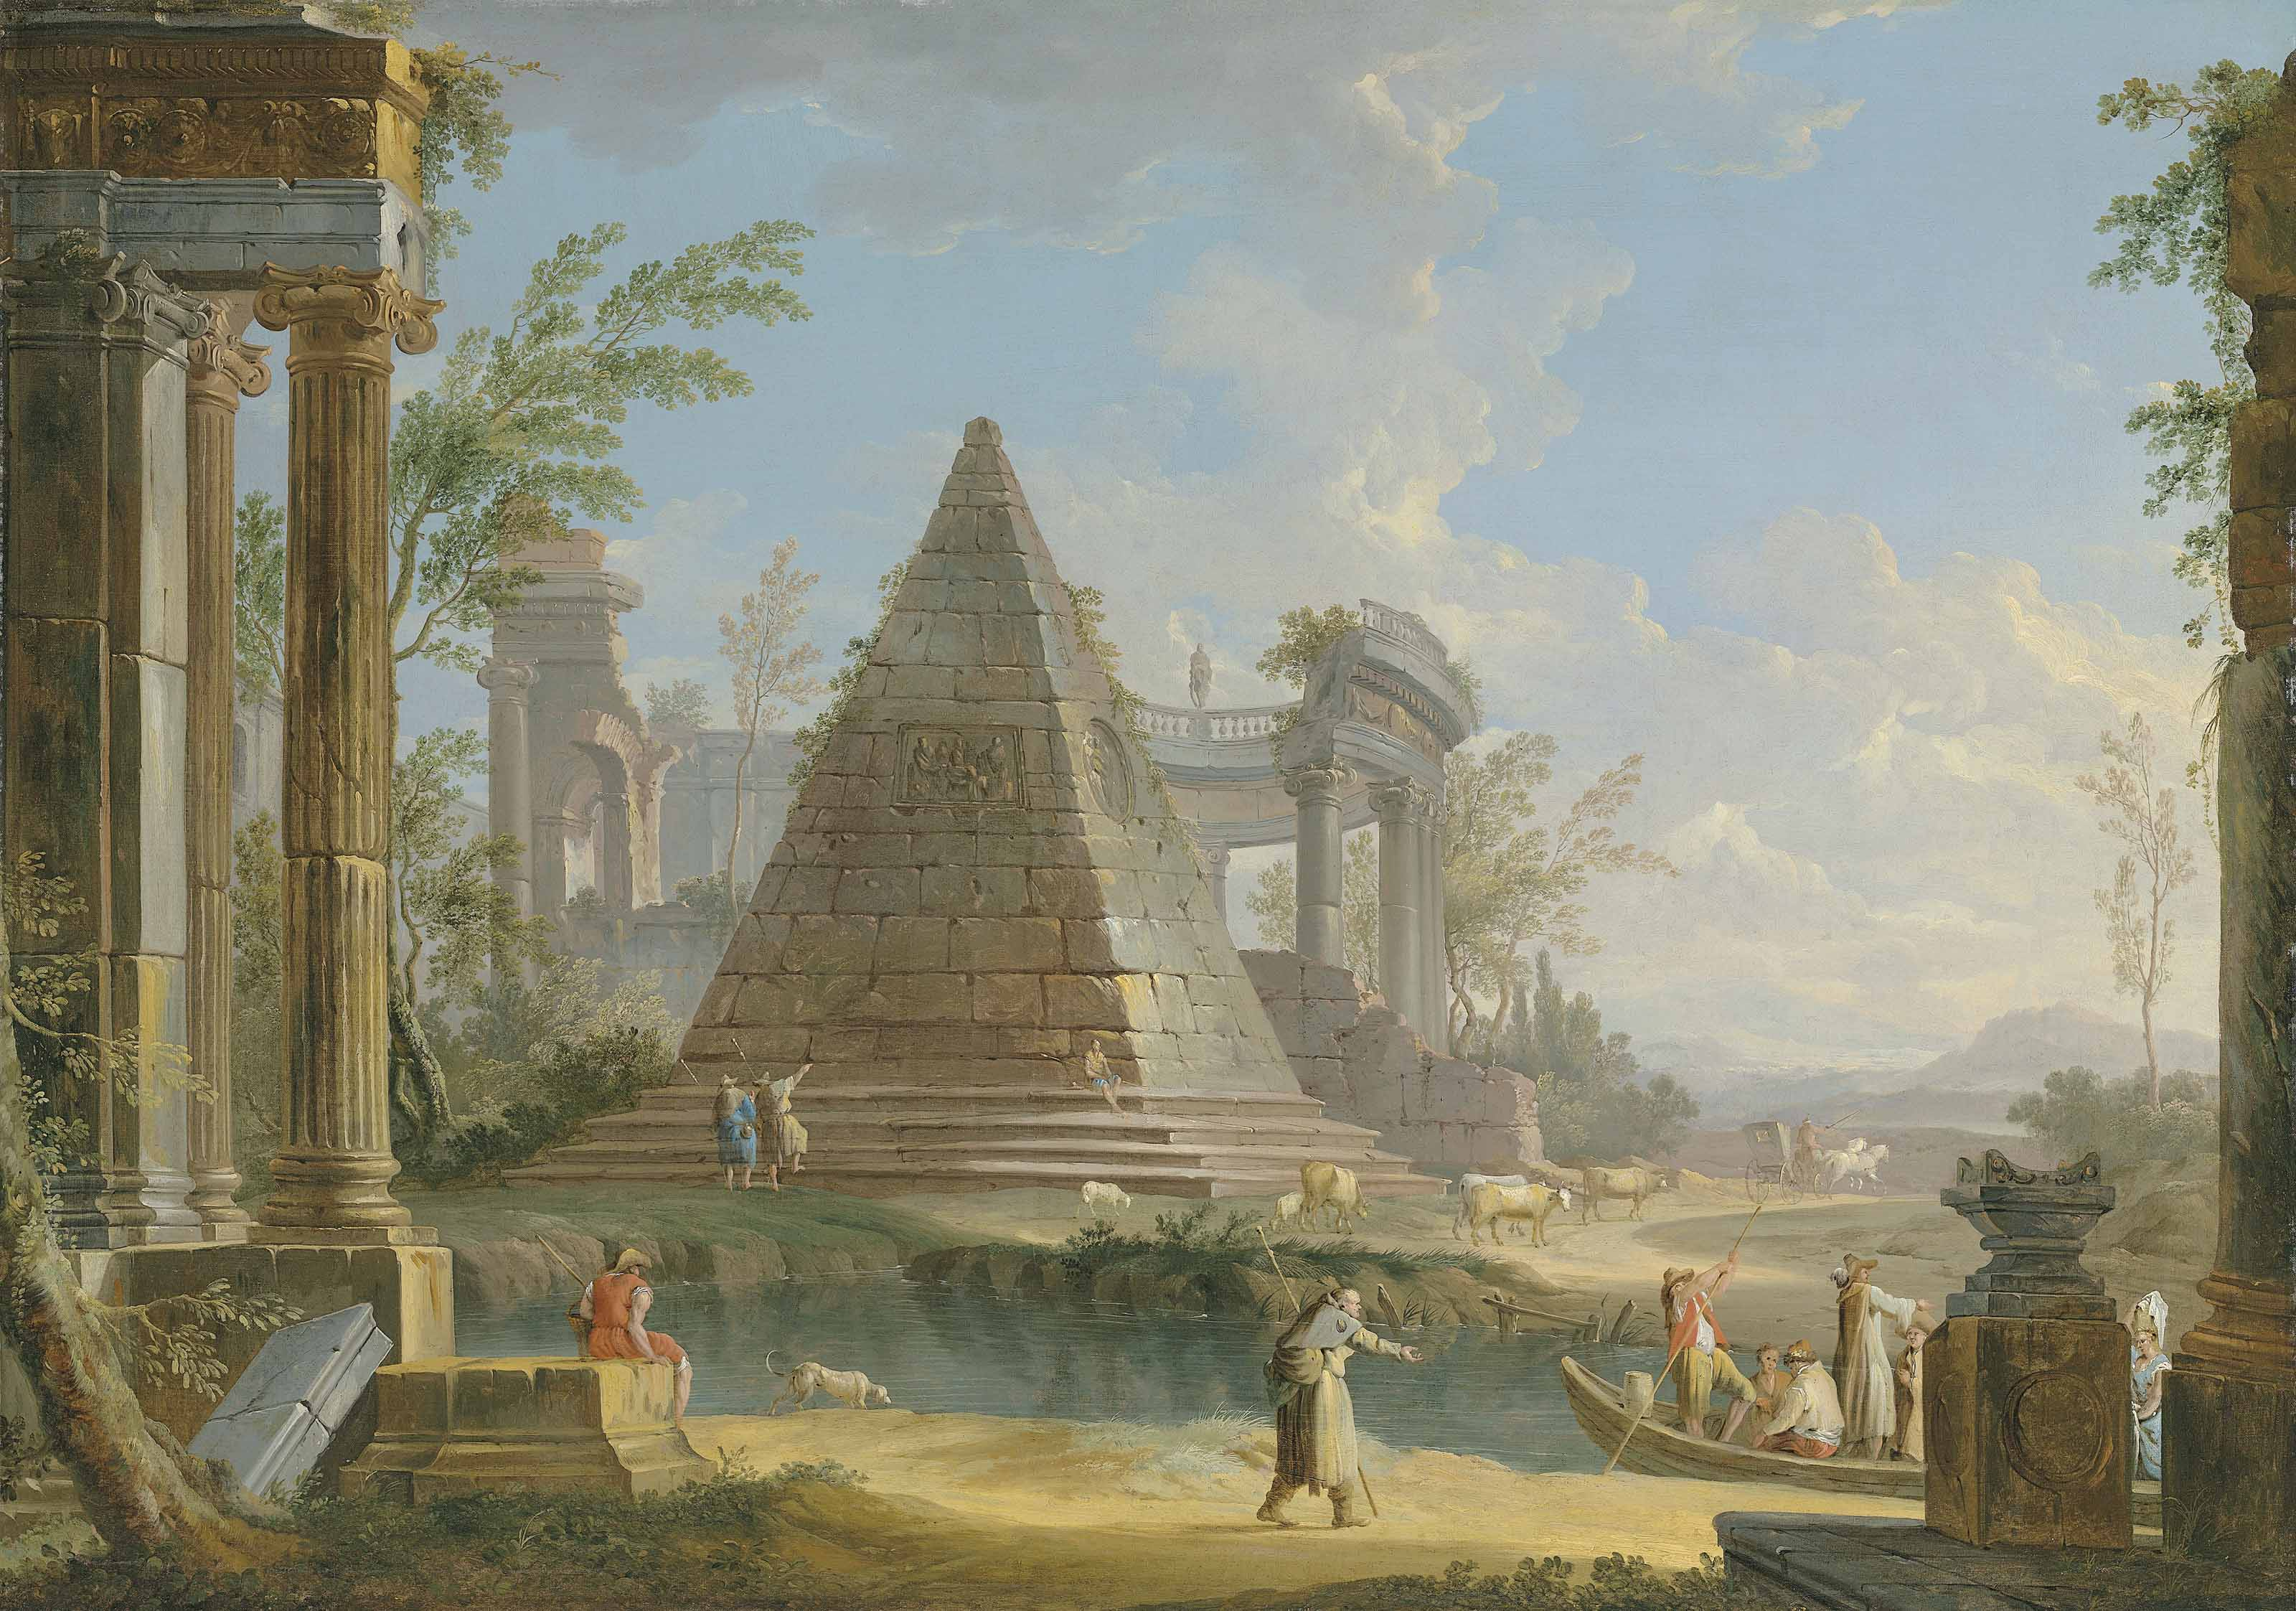 An architectural capriccio with figures ferried along a river, an extensive landscape beyond